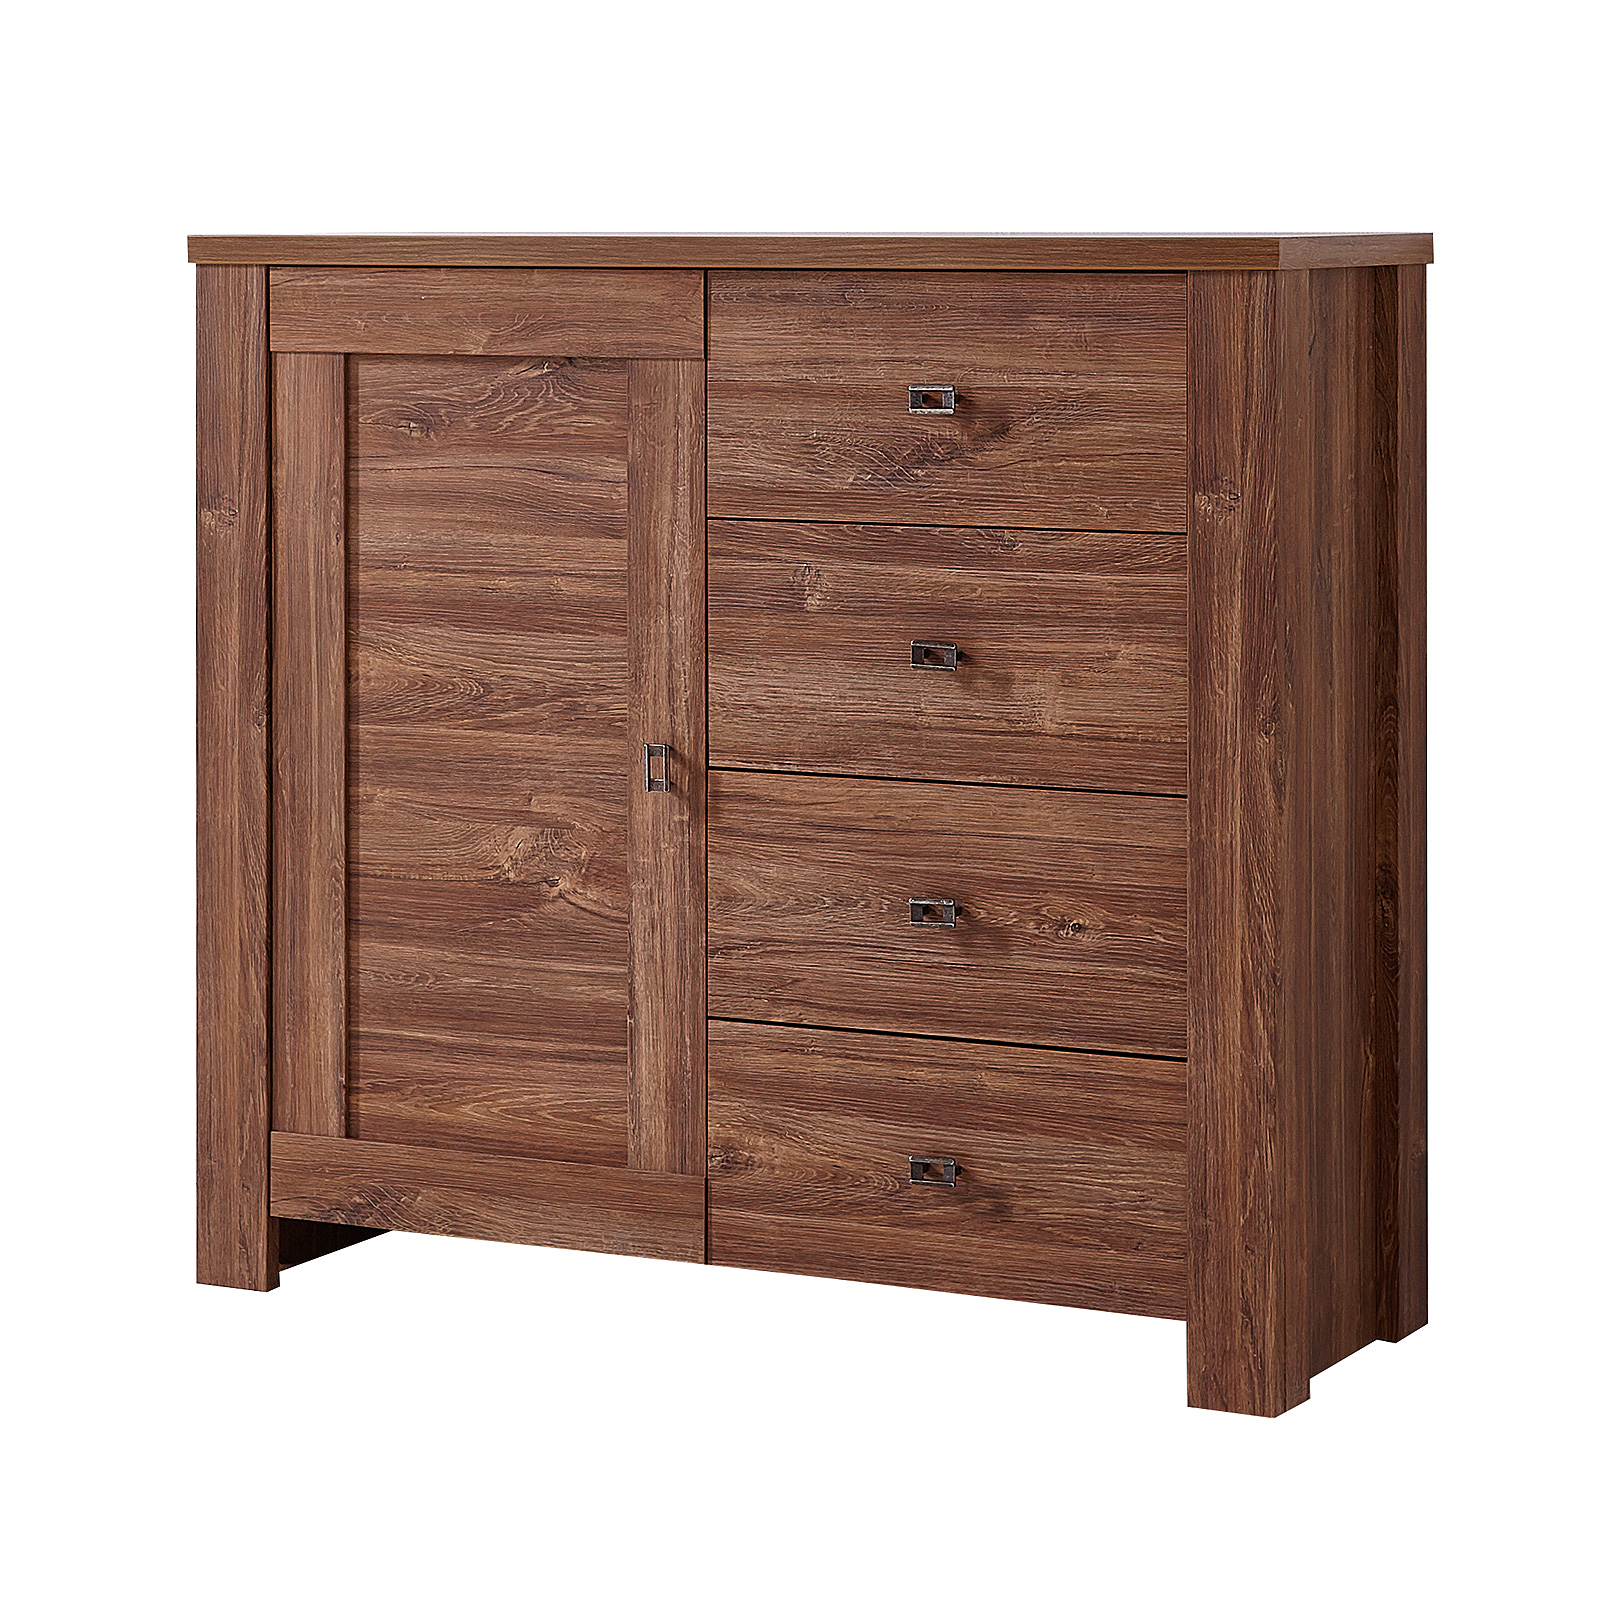 kommode 2 br ssel sideboard anrichte stauraumelement in akazie dunkel ebay. Black Bedroom Furniture Sets. Home Design Ideas